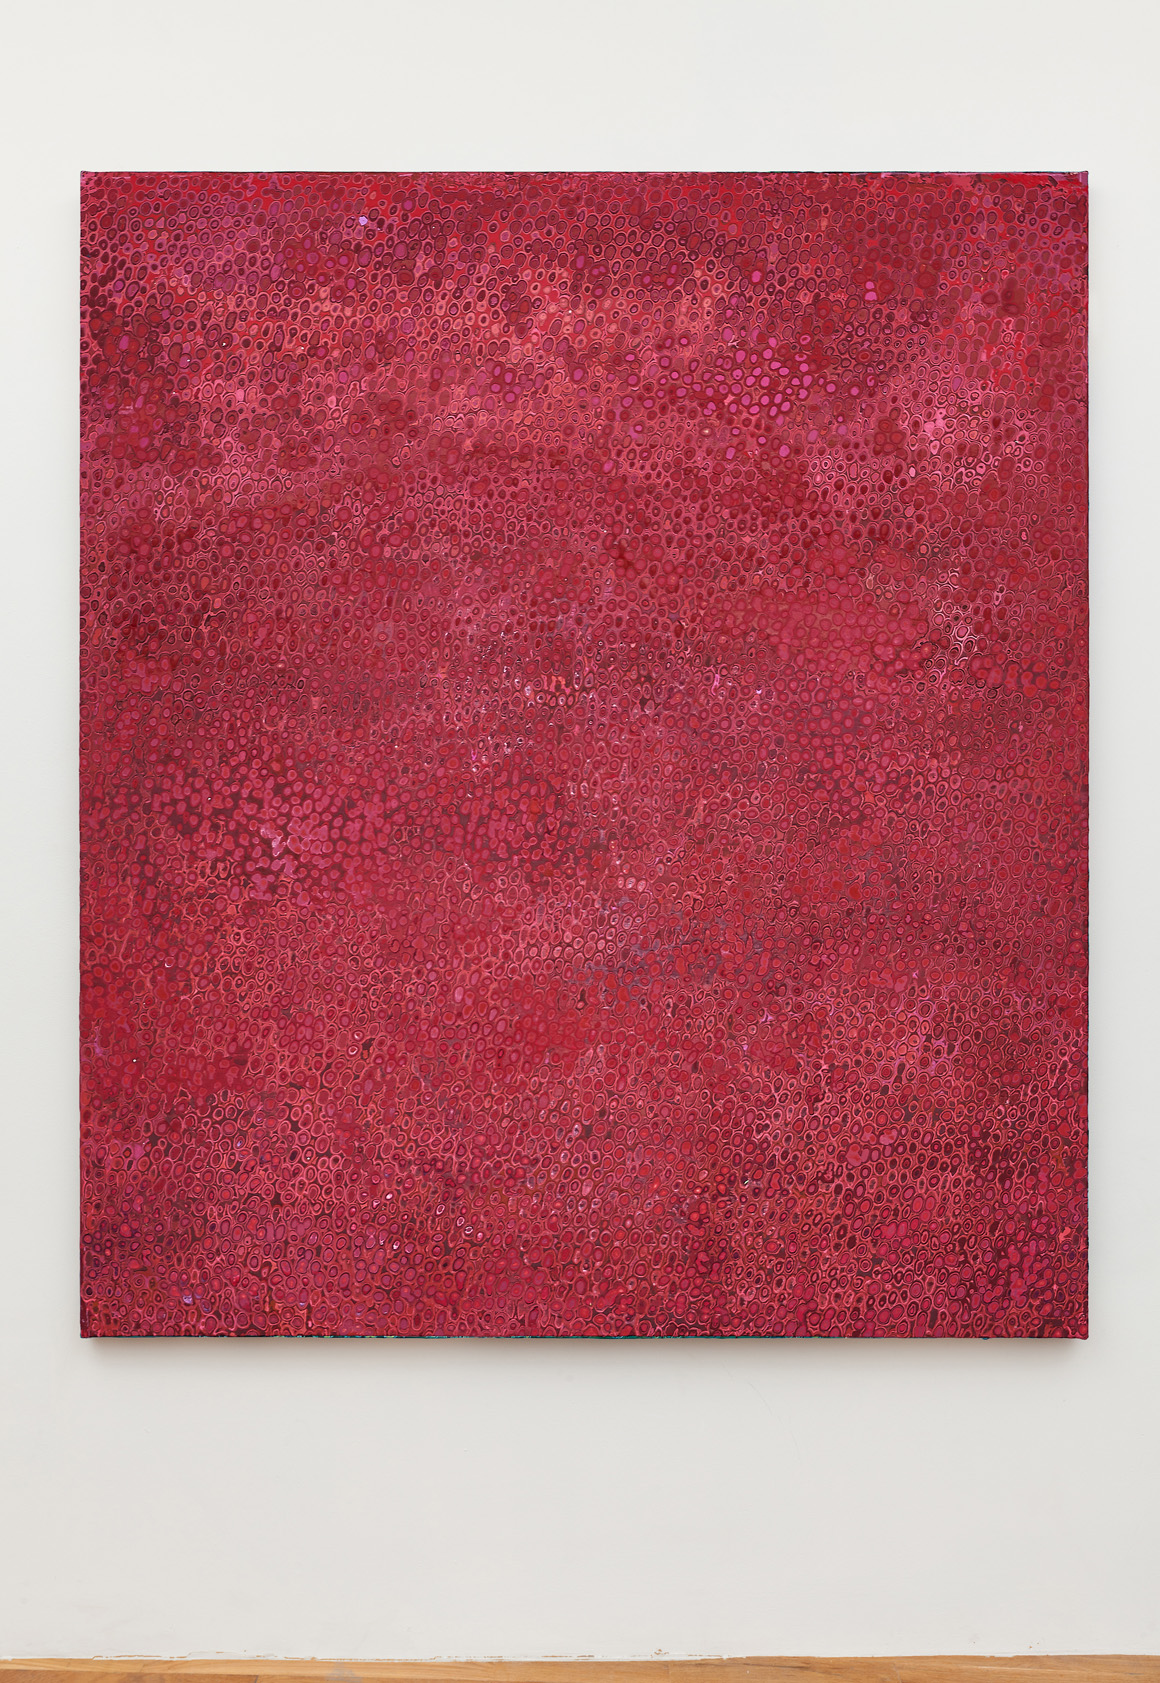 "<p><span class=""name"">Andrew Jensdotter</span><br><em>Red 75</em><span class='media'>Carved latex on canvas</span>80 x 68 in (203.2 x 172.7 cm)<br>2018<br></p>"